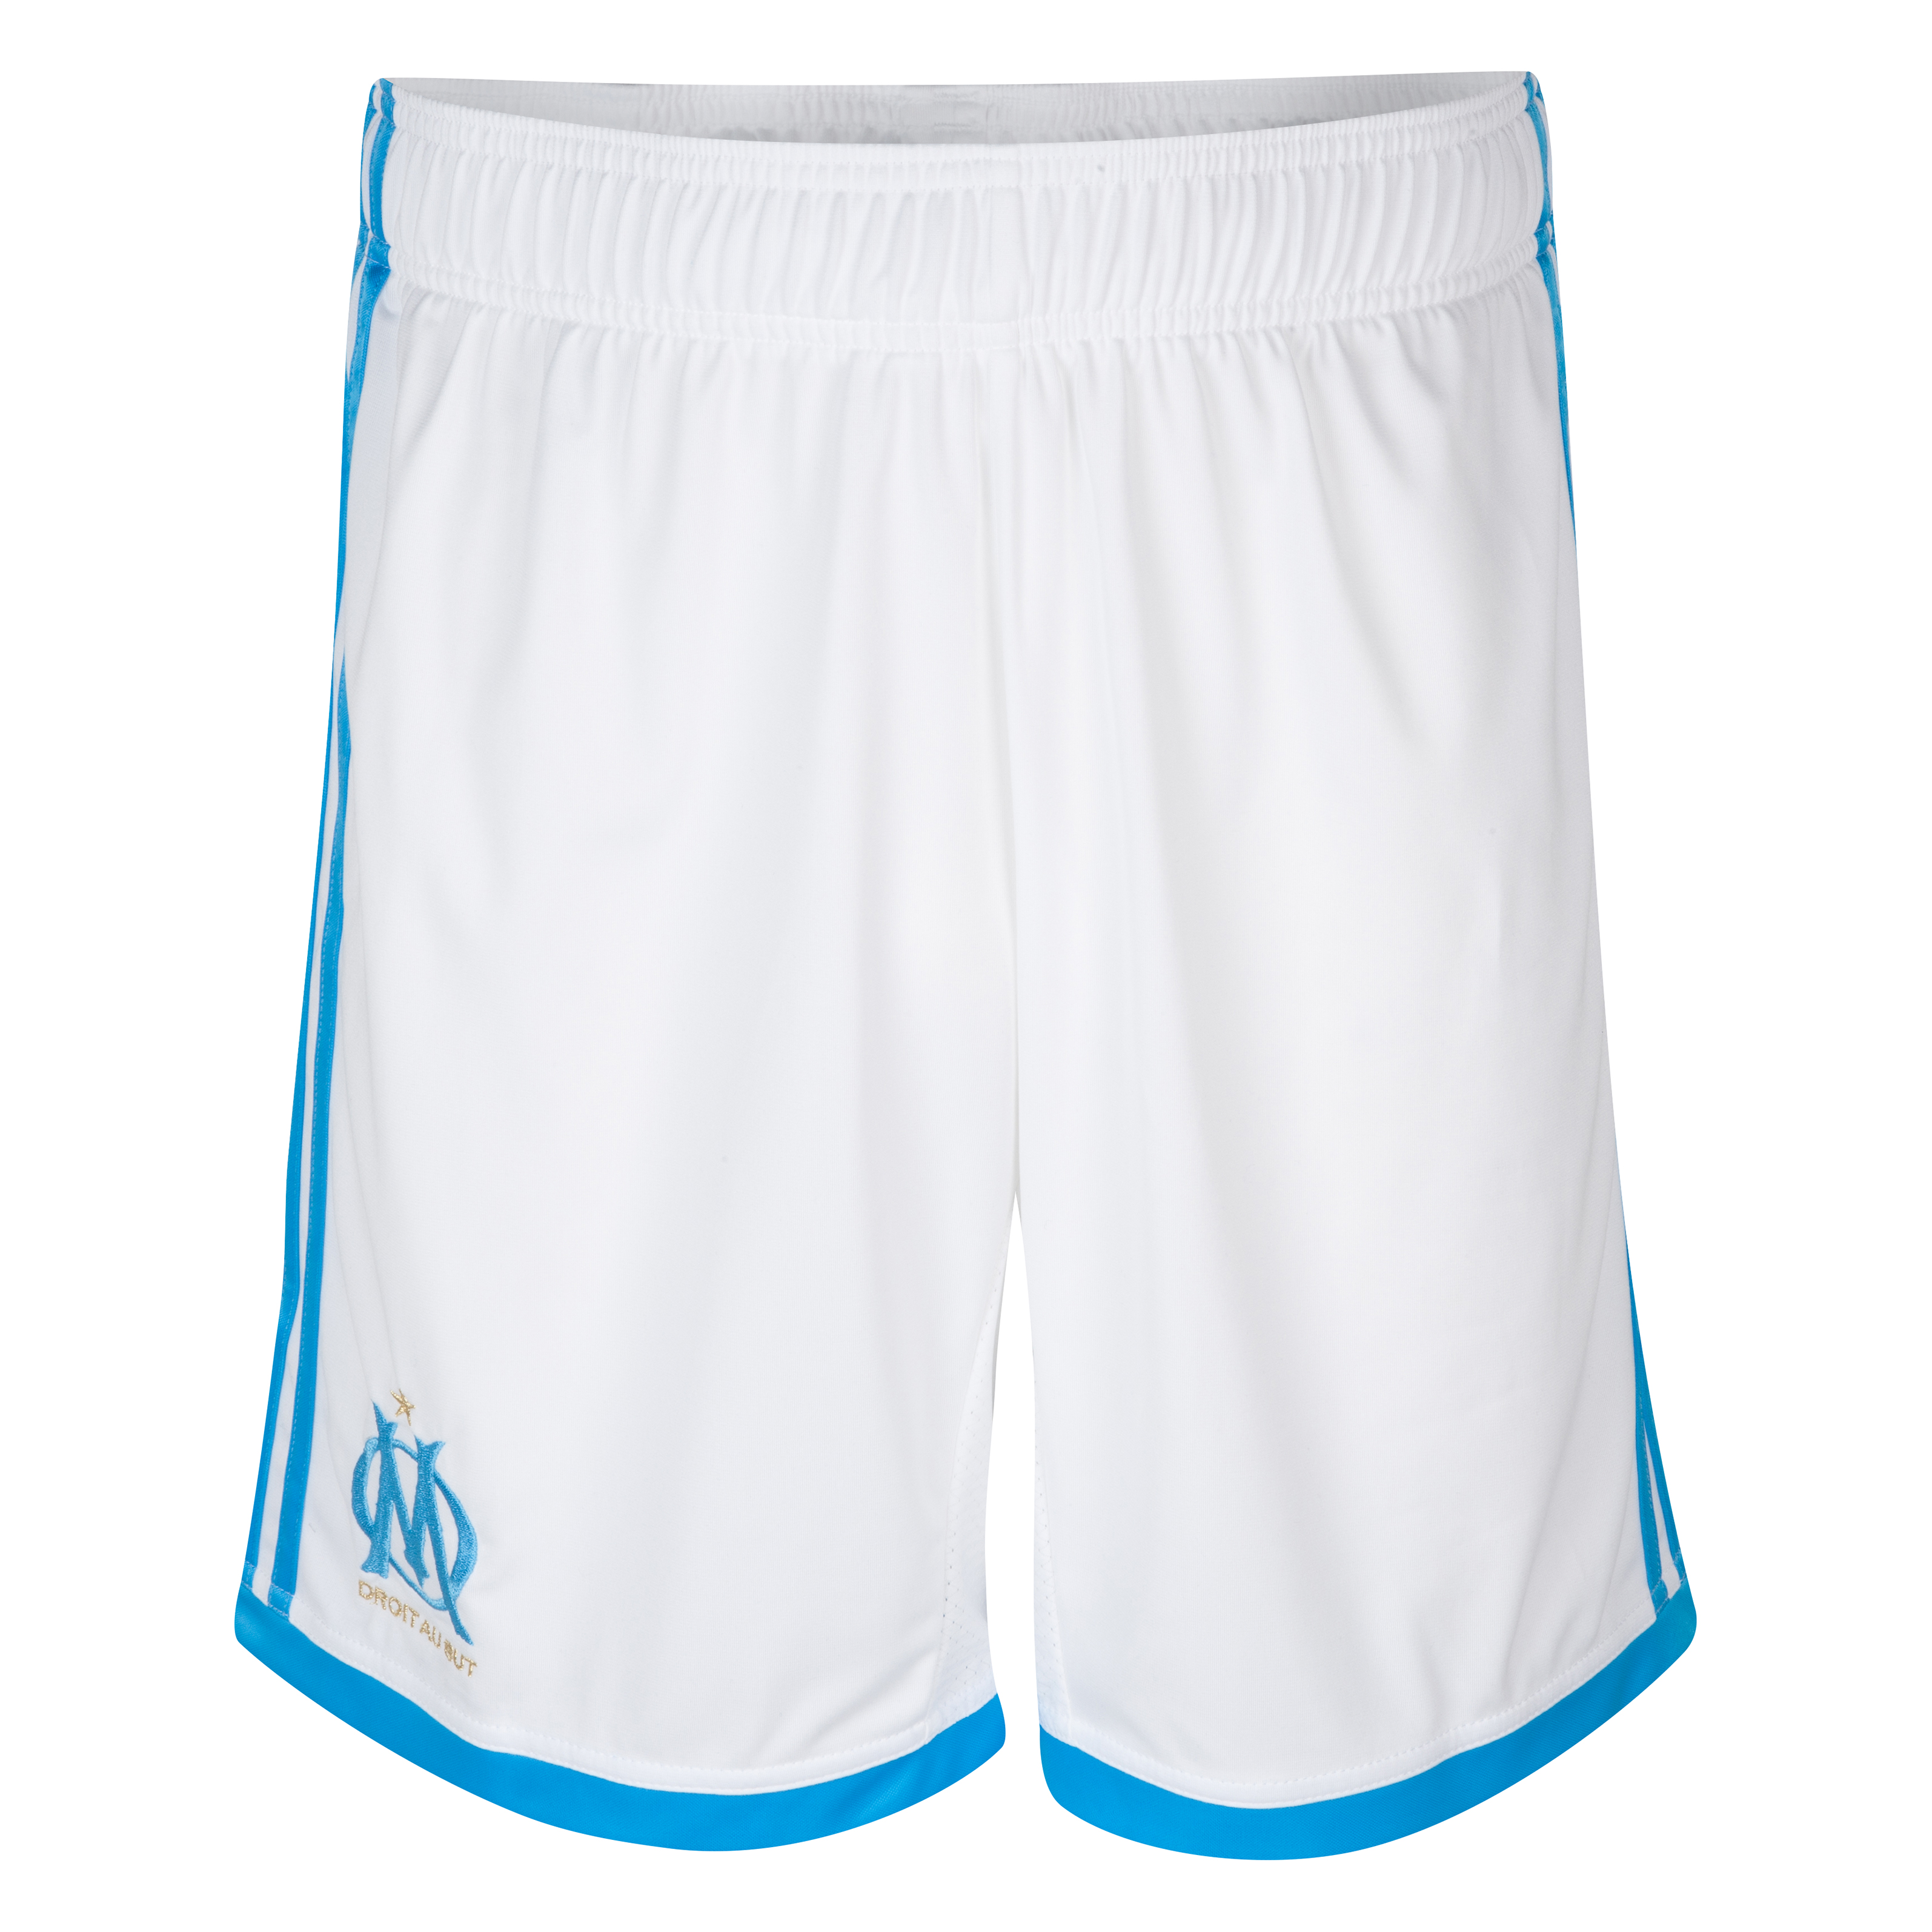 Olympique de Marseille Home Shorts 2013/14 - Mens White